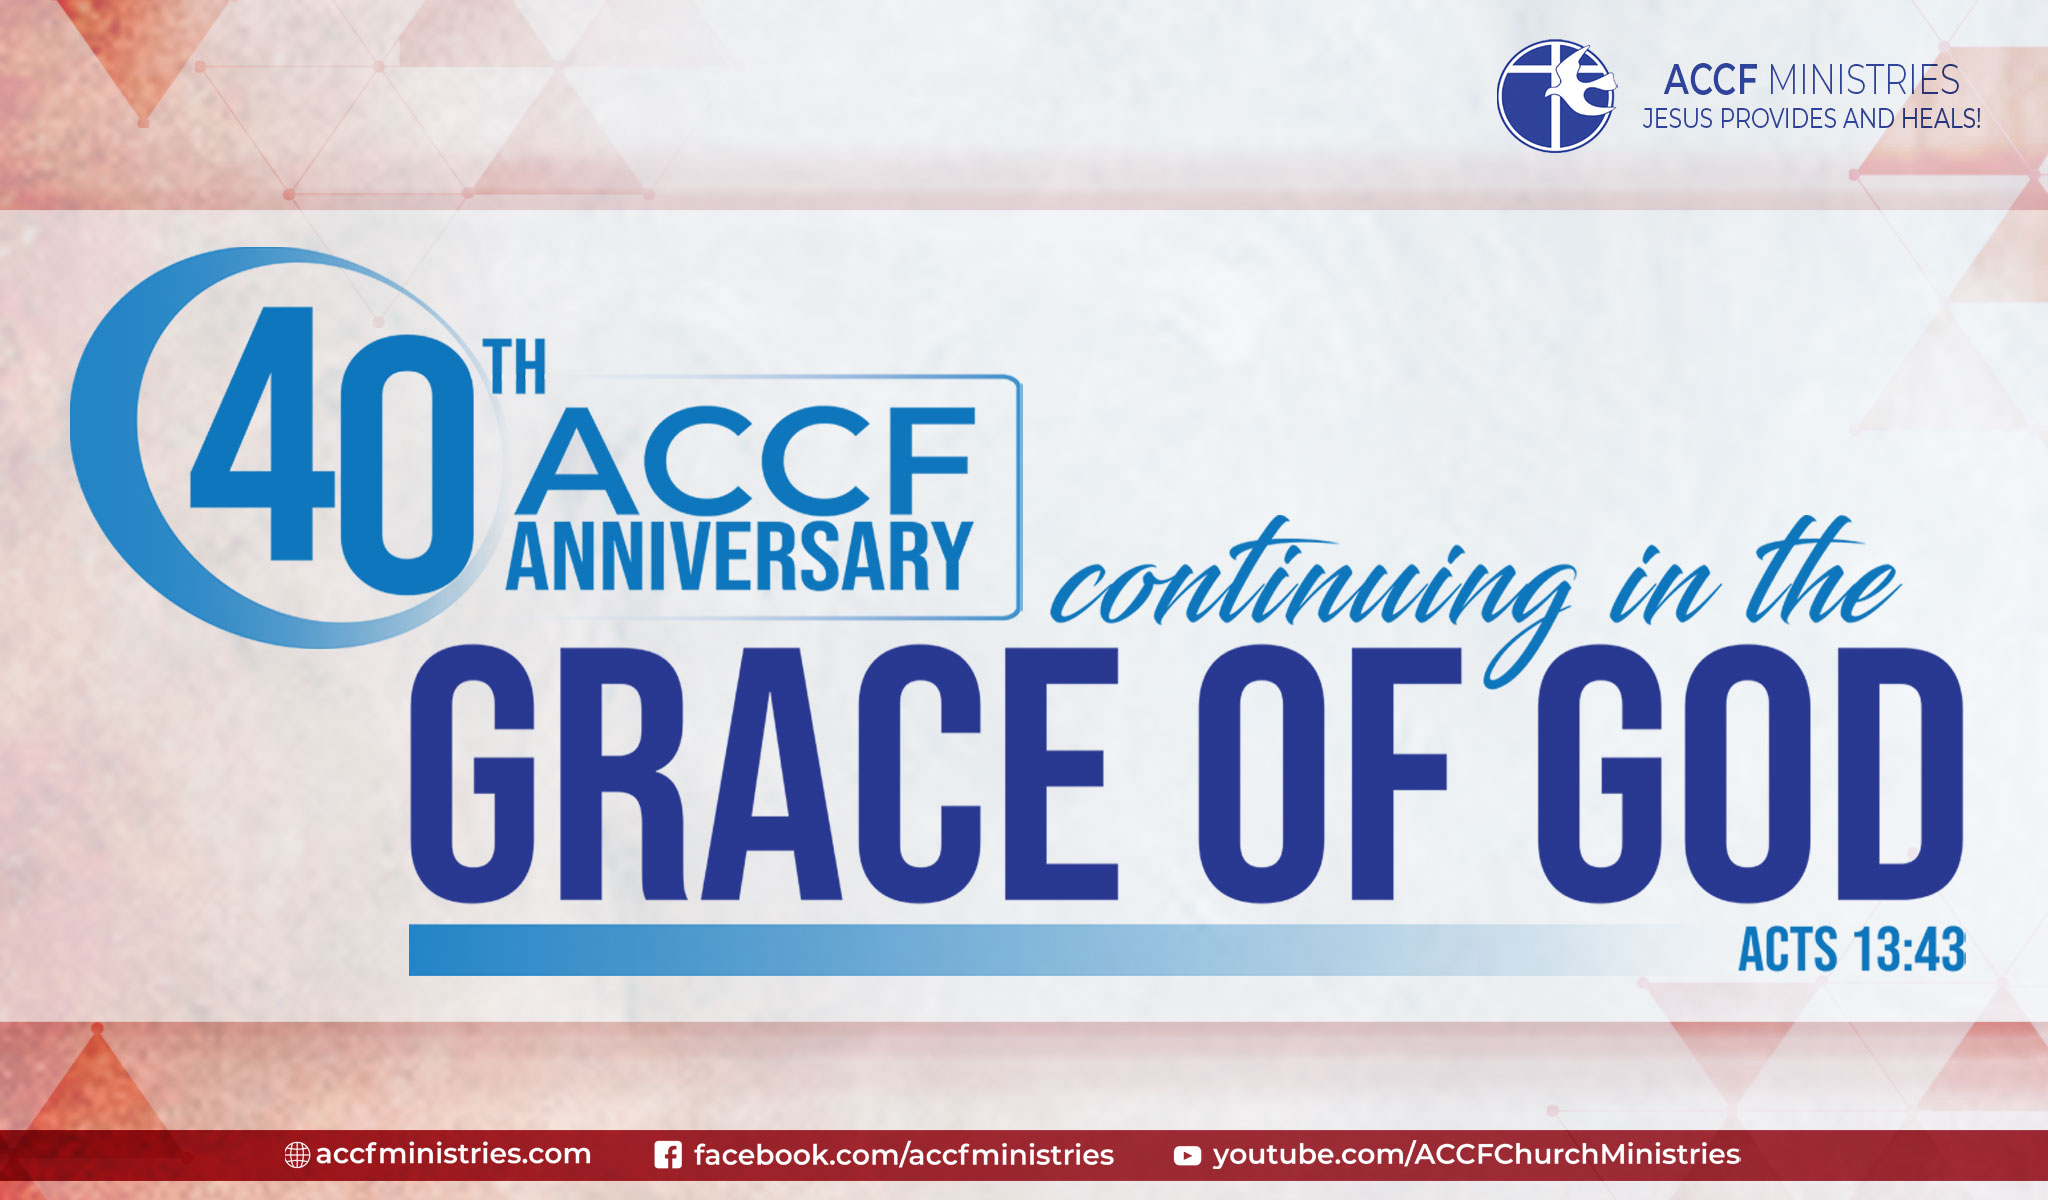 ACCF@40 - Continuing in the Grace of God